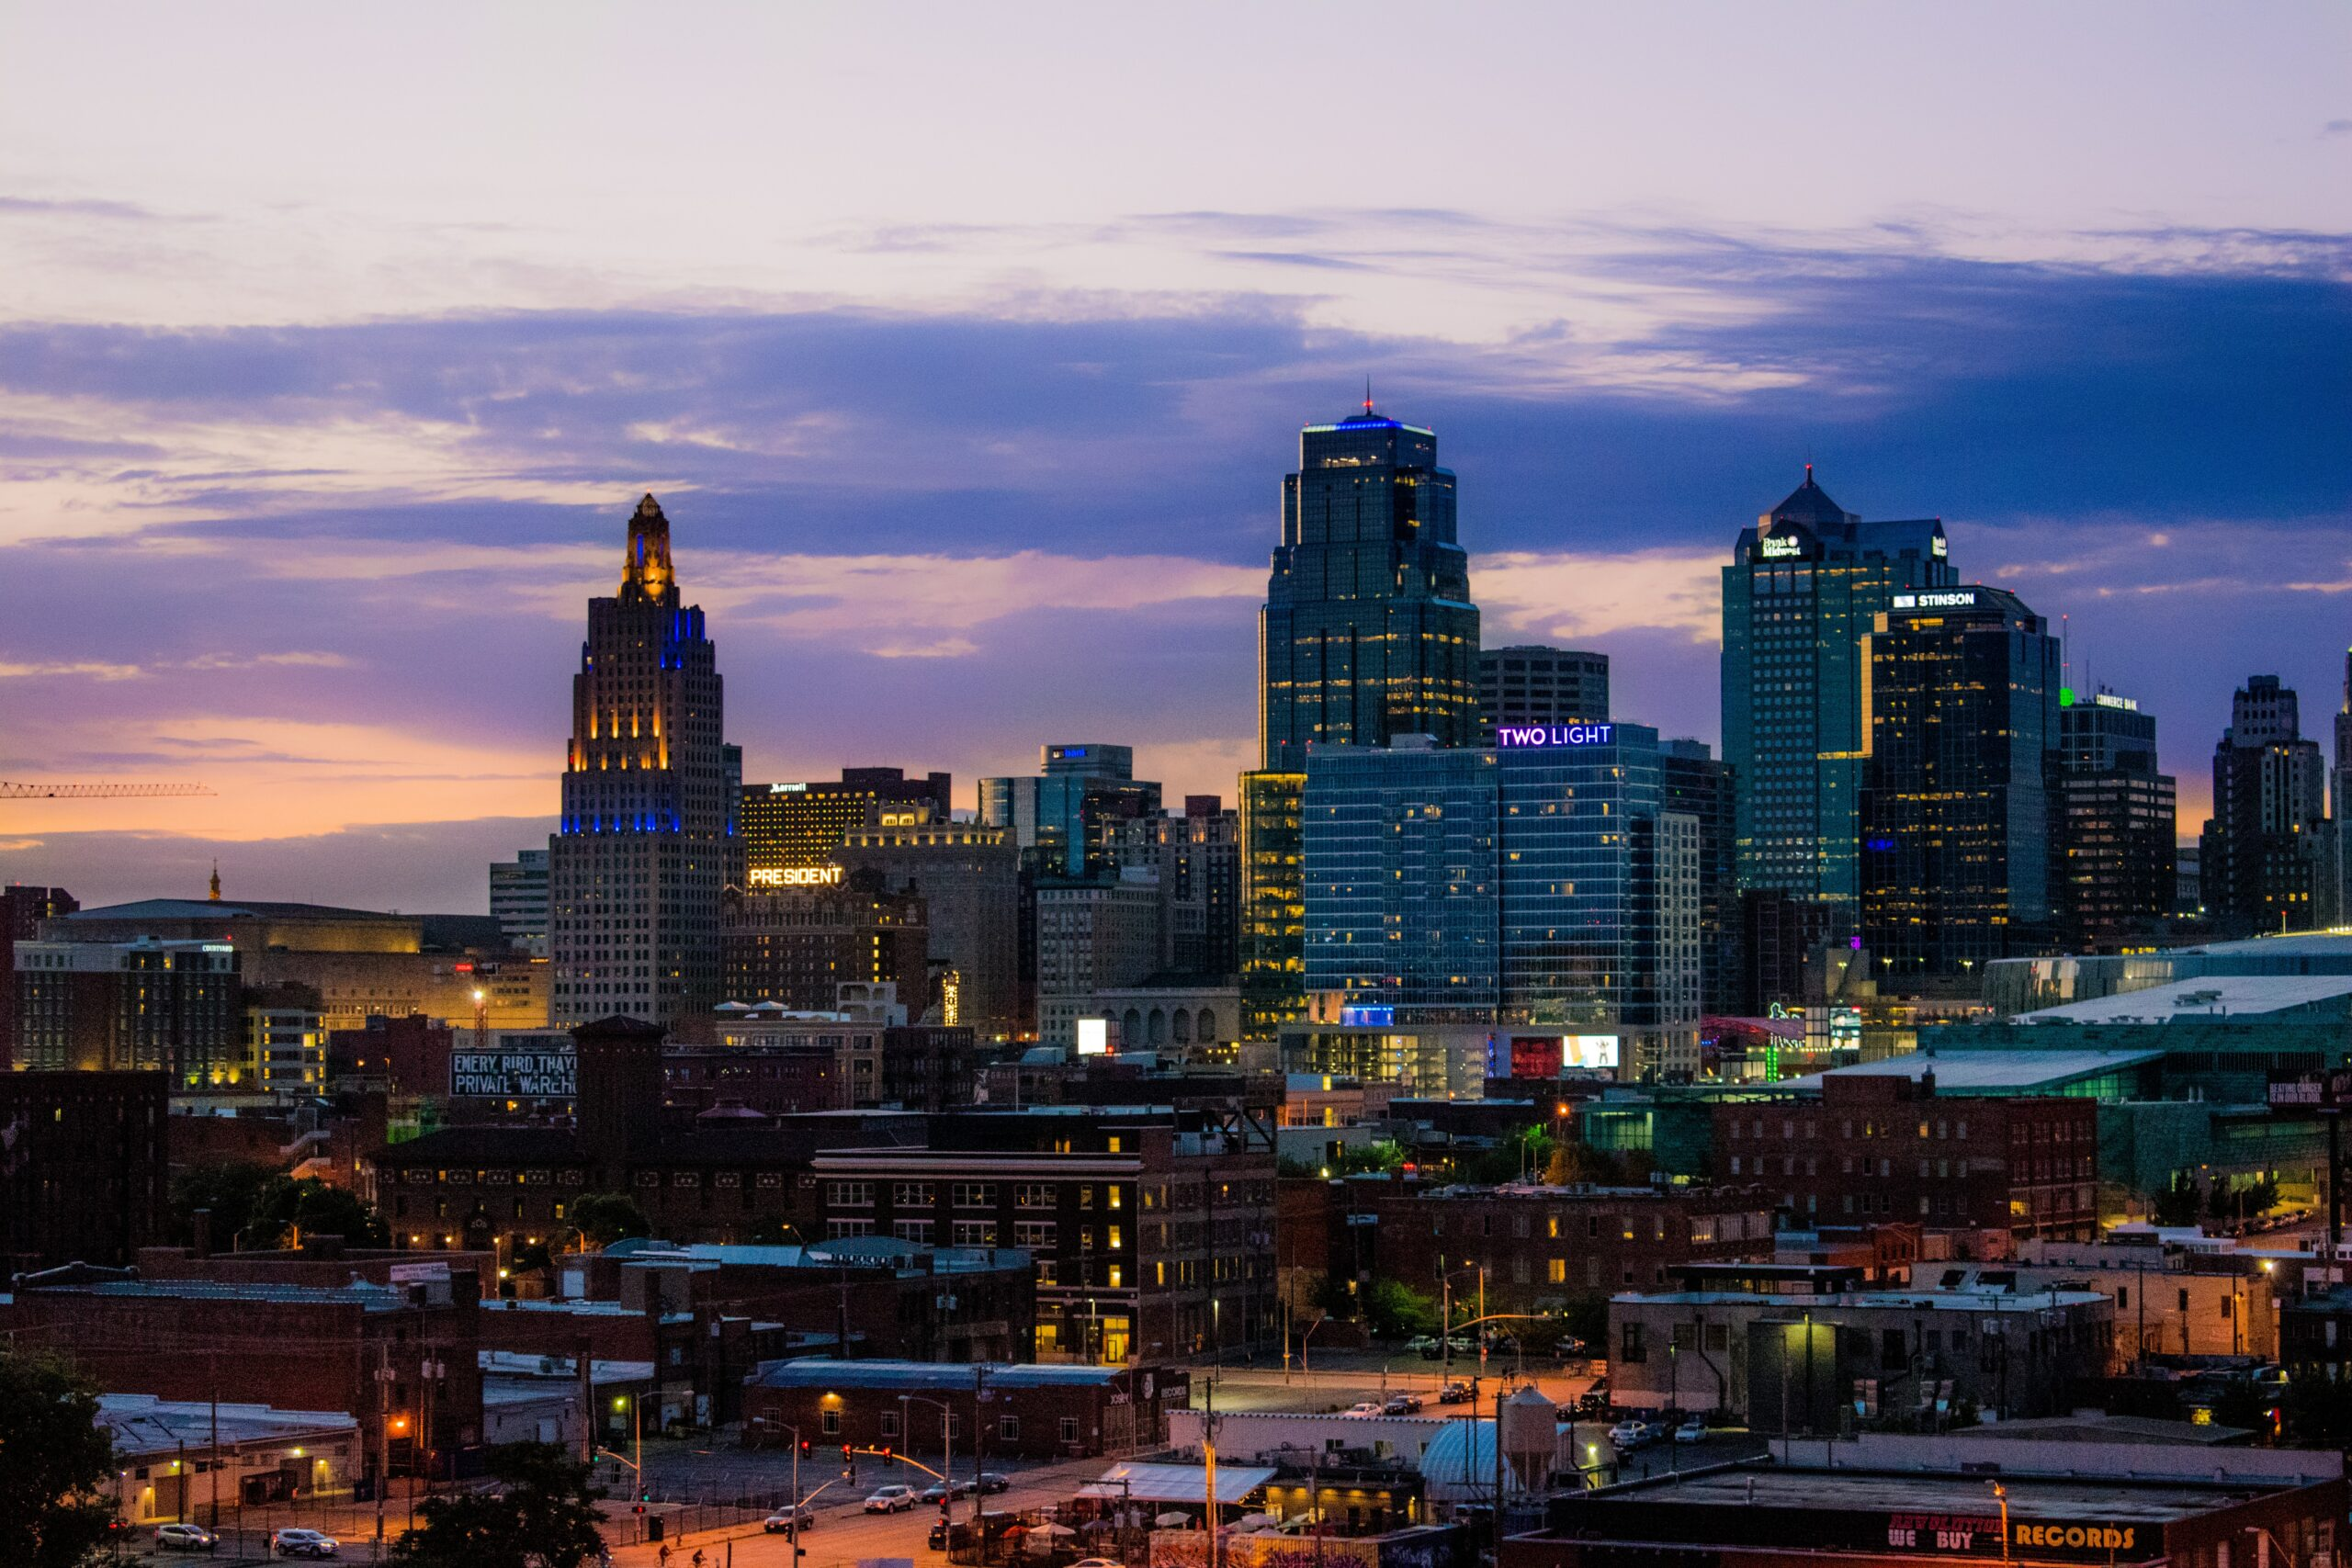 Kansas City Council Reaches Dispensary Zoning Compromise for Medical Cannabis Patients